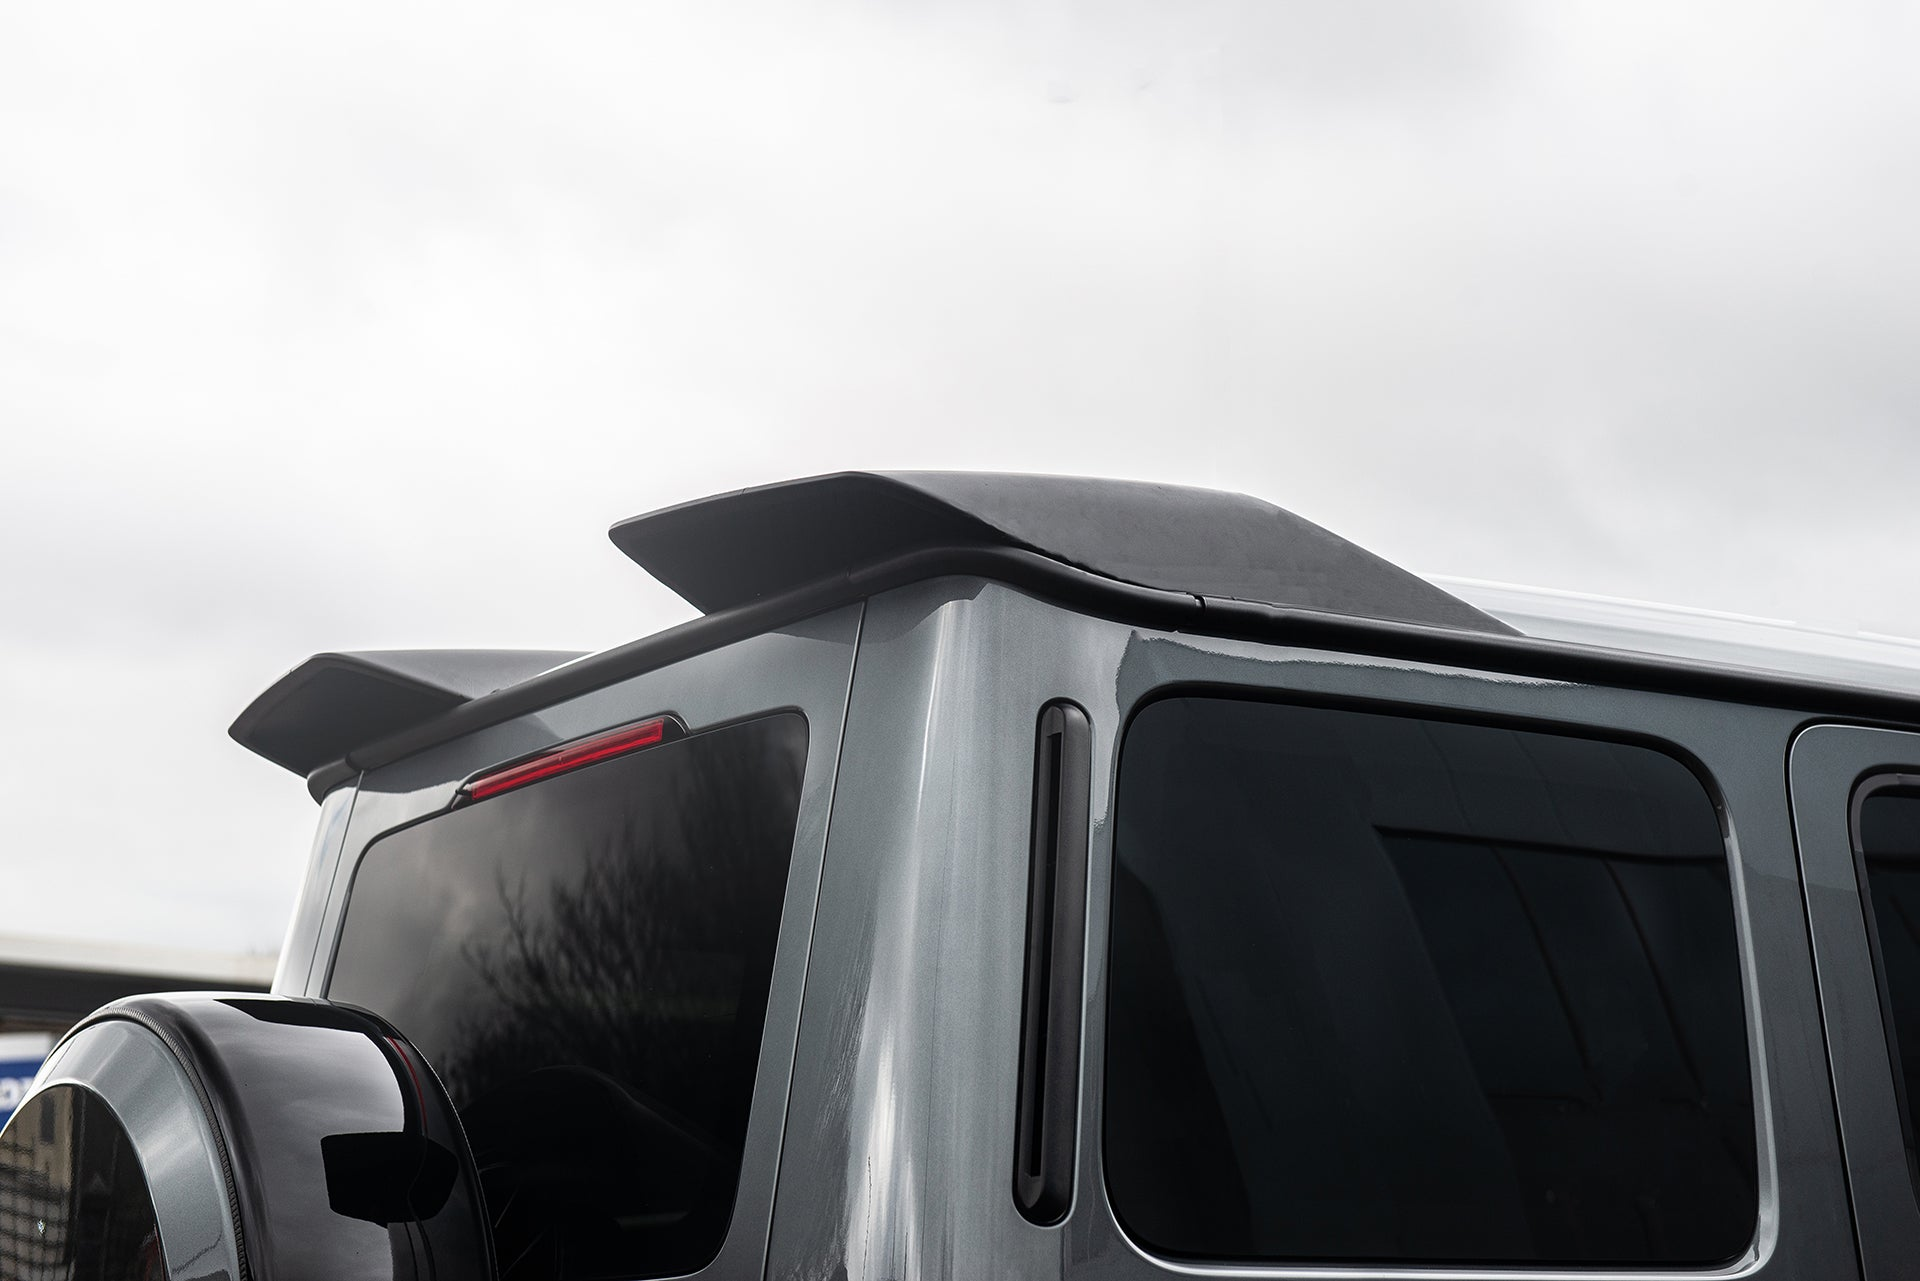 MERCEDES G-WAGON (2018-PRESENT) EXPOSED CARBON REAR ROOF WING